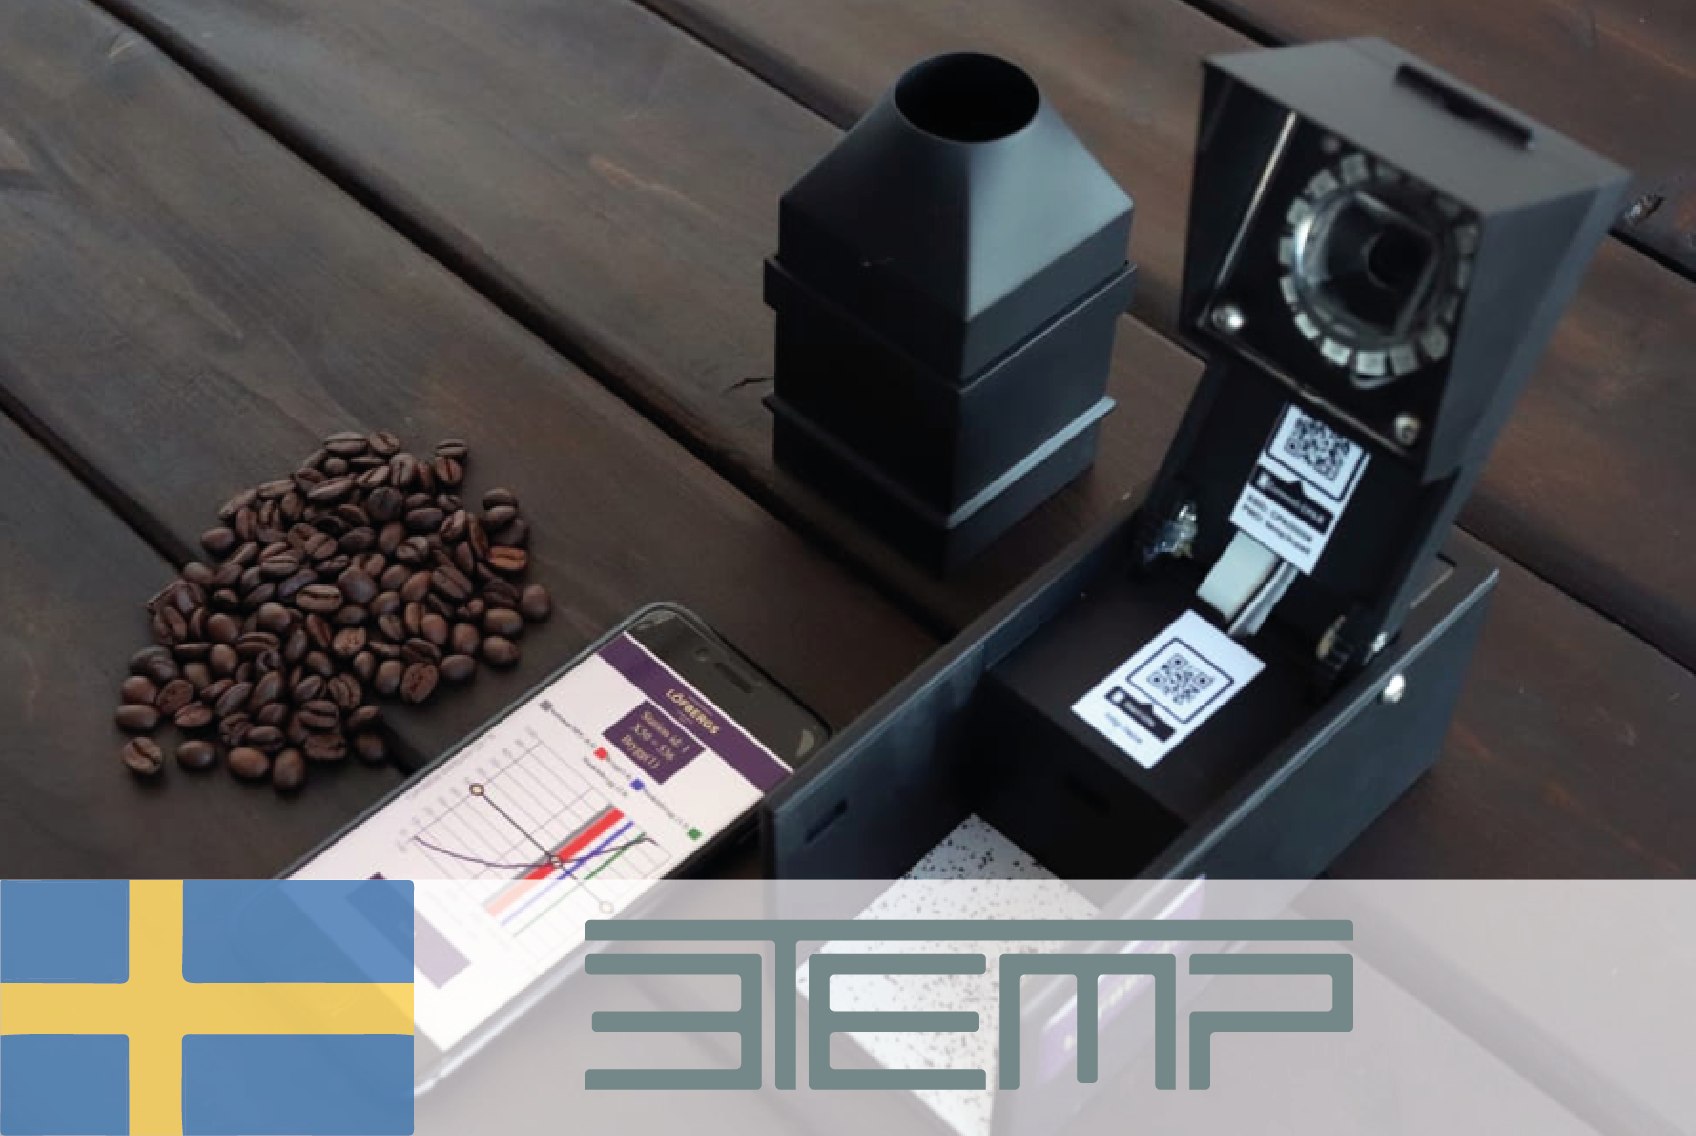 #7 3TEMP - Online coffee machine allows for efficient service and repair - CIRCit Nord